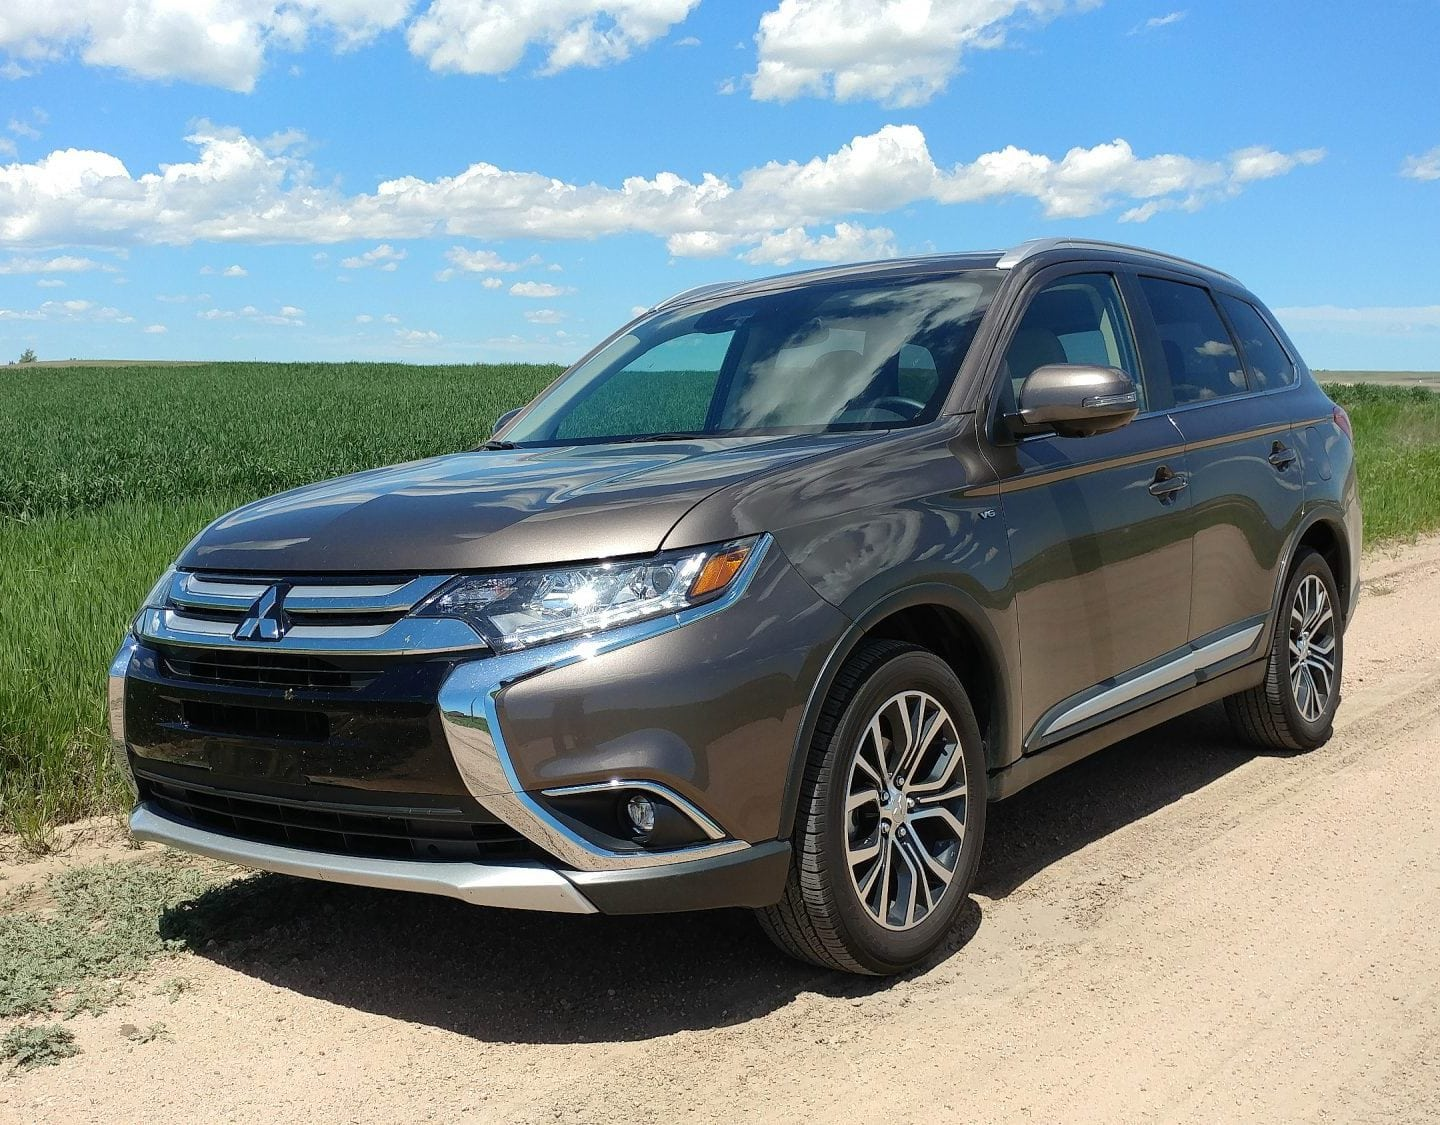 2018 Mitsubishi Outlander GT Is Budget For a V6